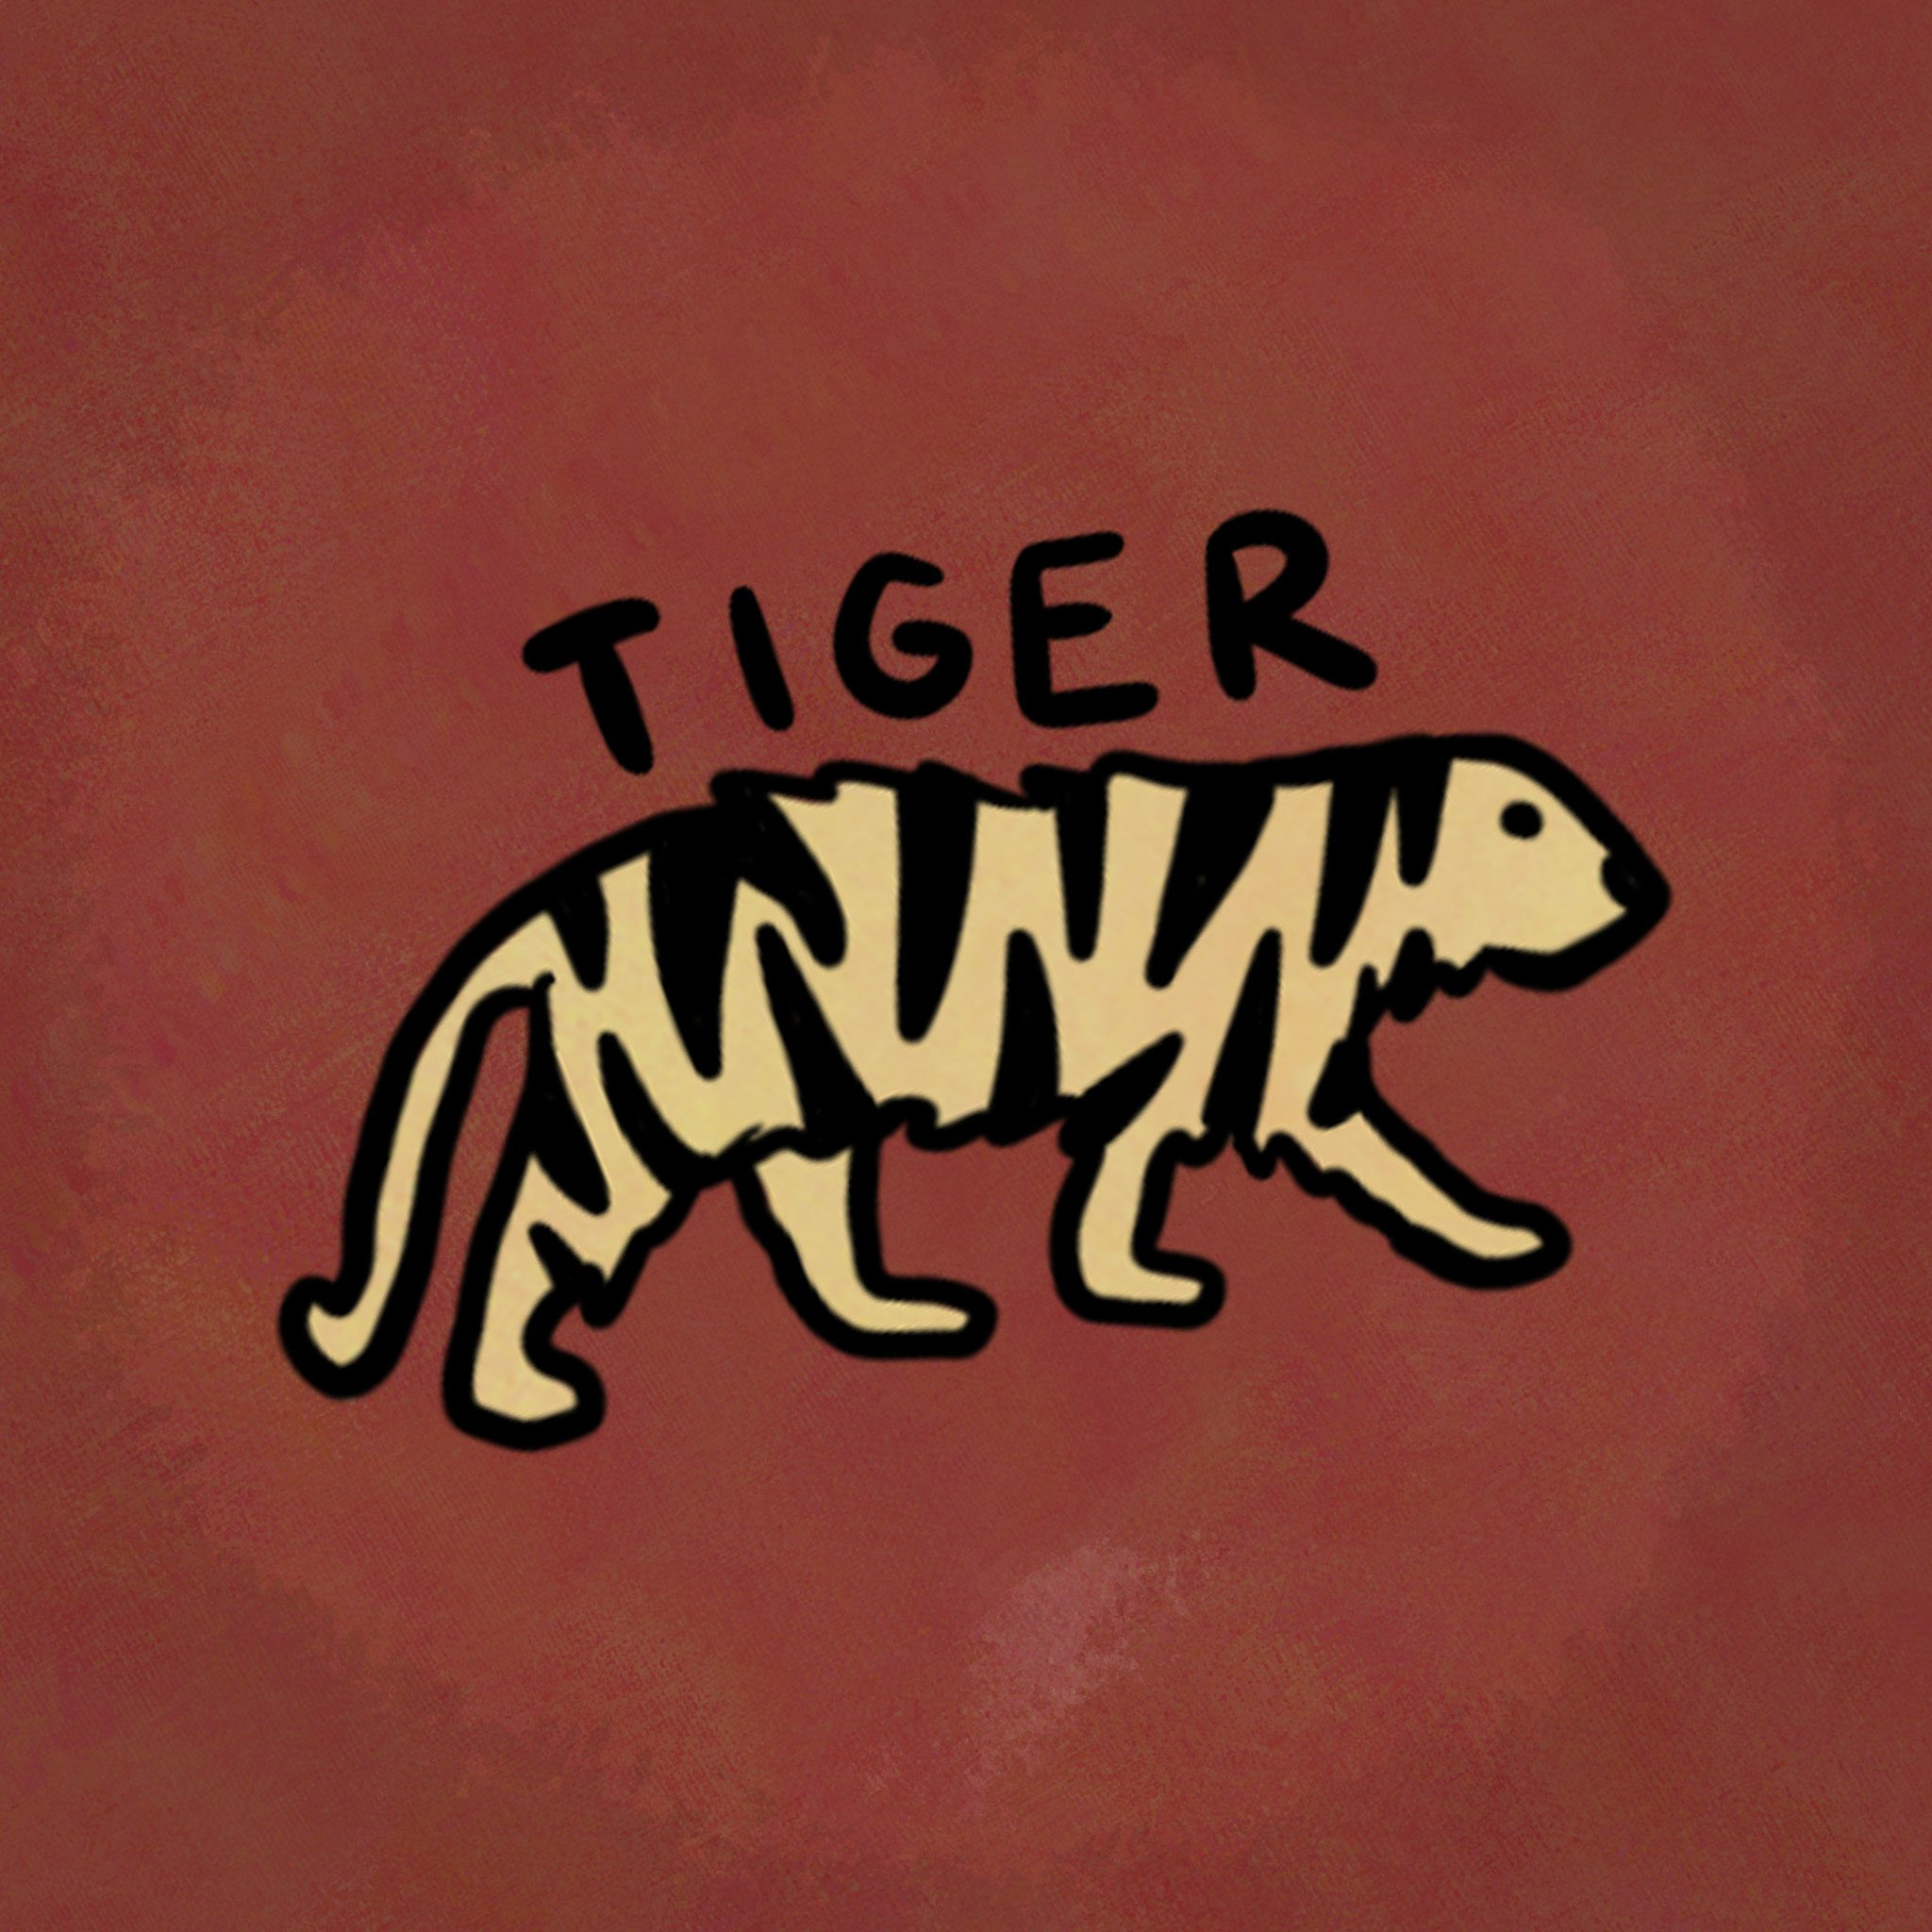 Illustration of animal from the chinese zodiac: Tiger